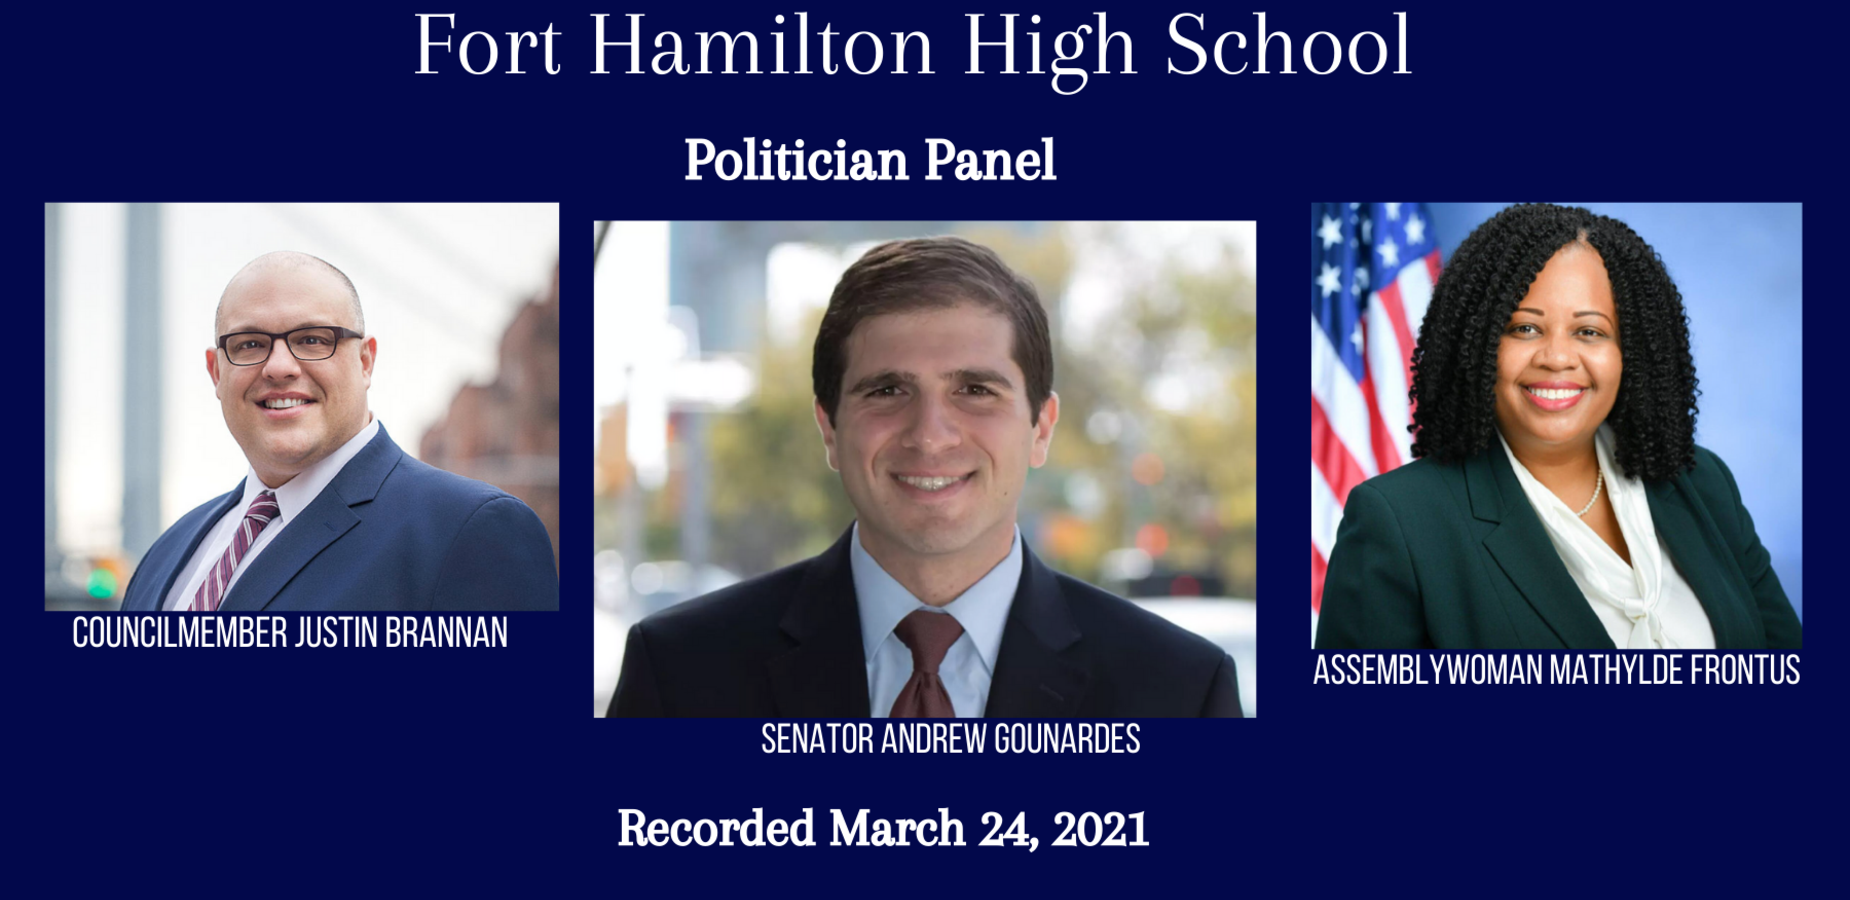 Fort Hamilton High School Politician Panel Councilmember Justin Brannan, Senator Andrew Gounardes, and Assemblywoman Mathylde Frontus. Recorced March 24, 2021